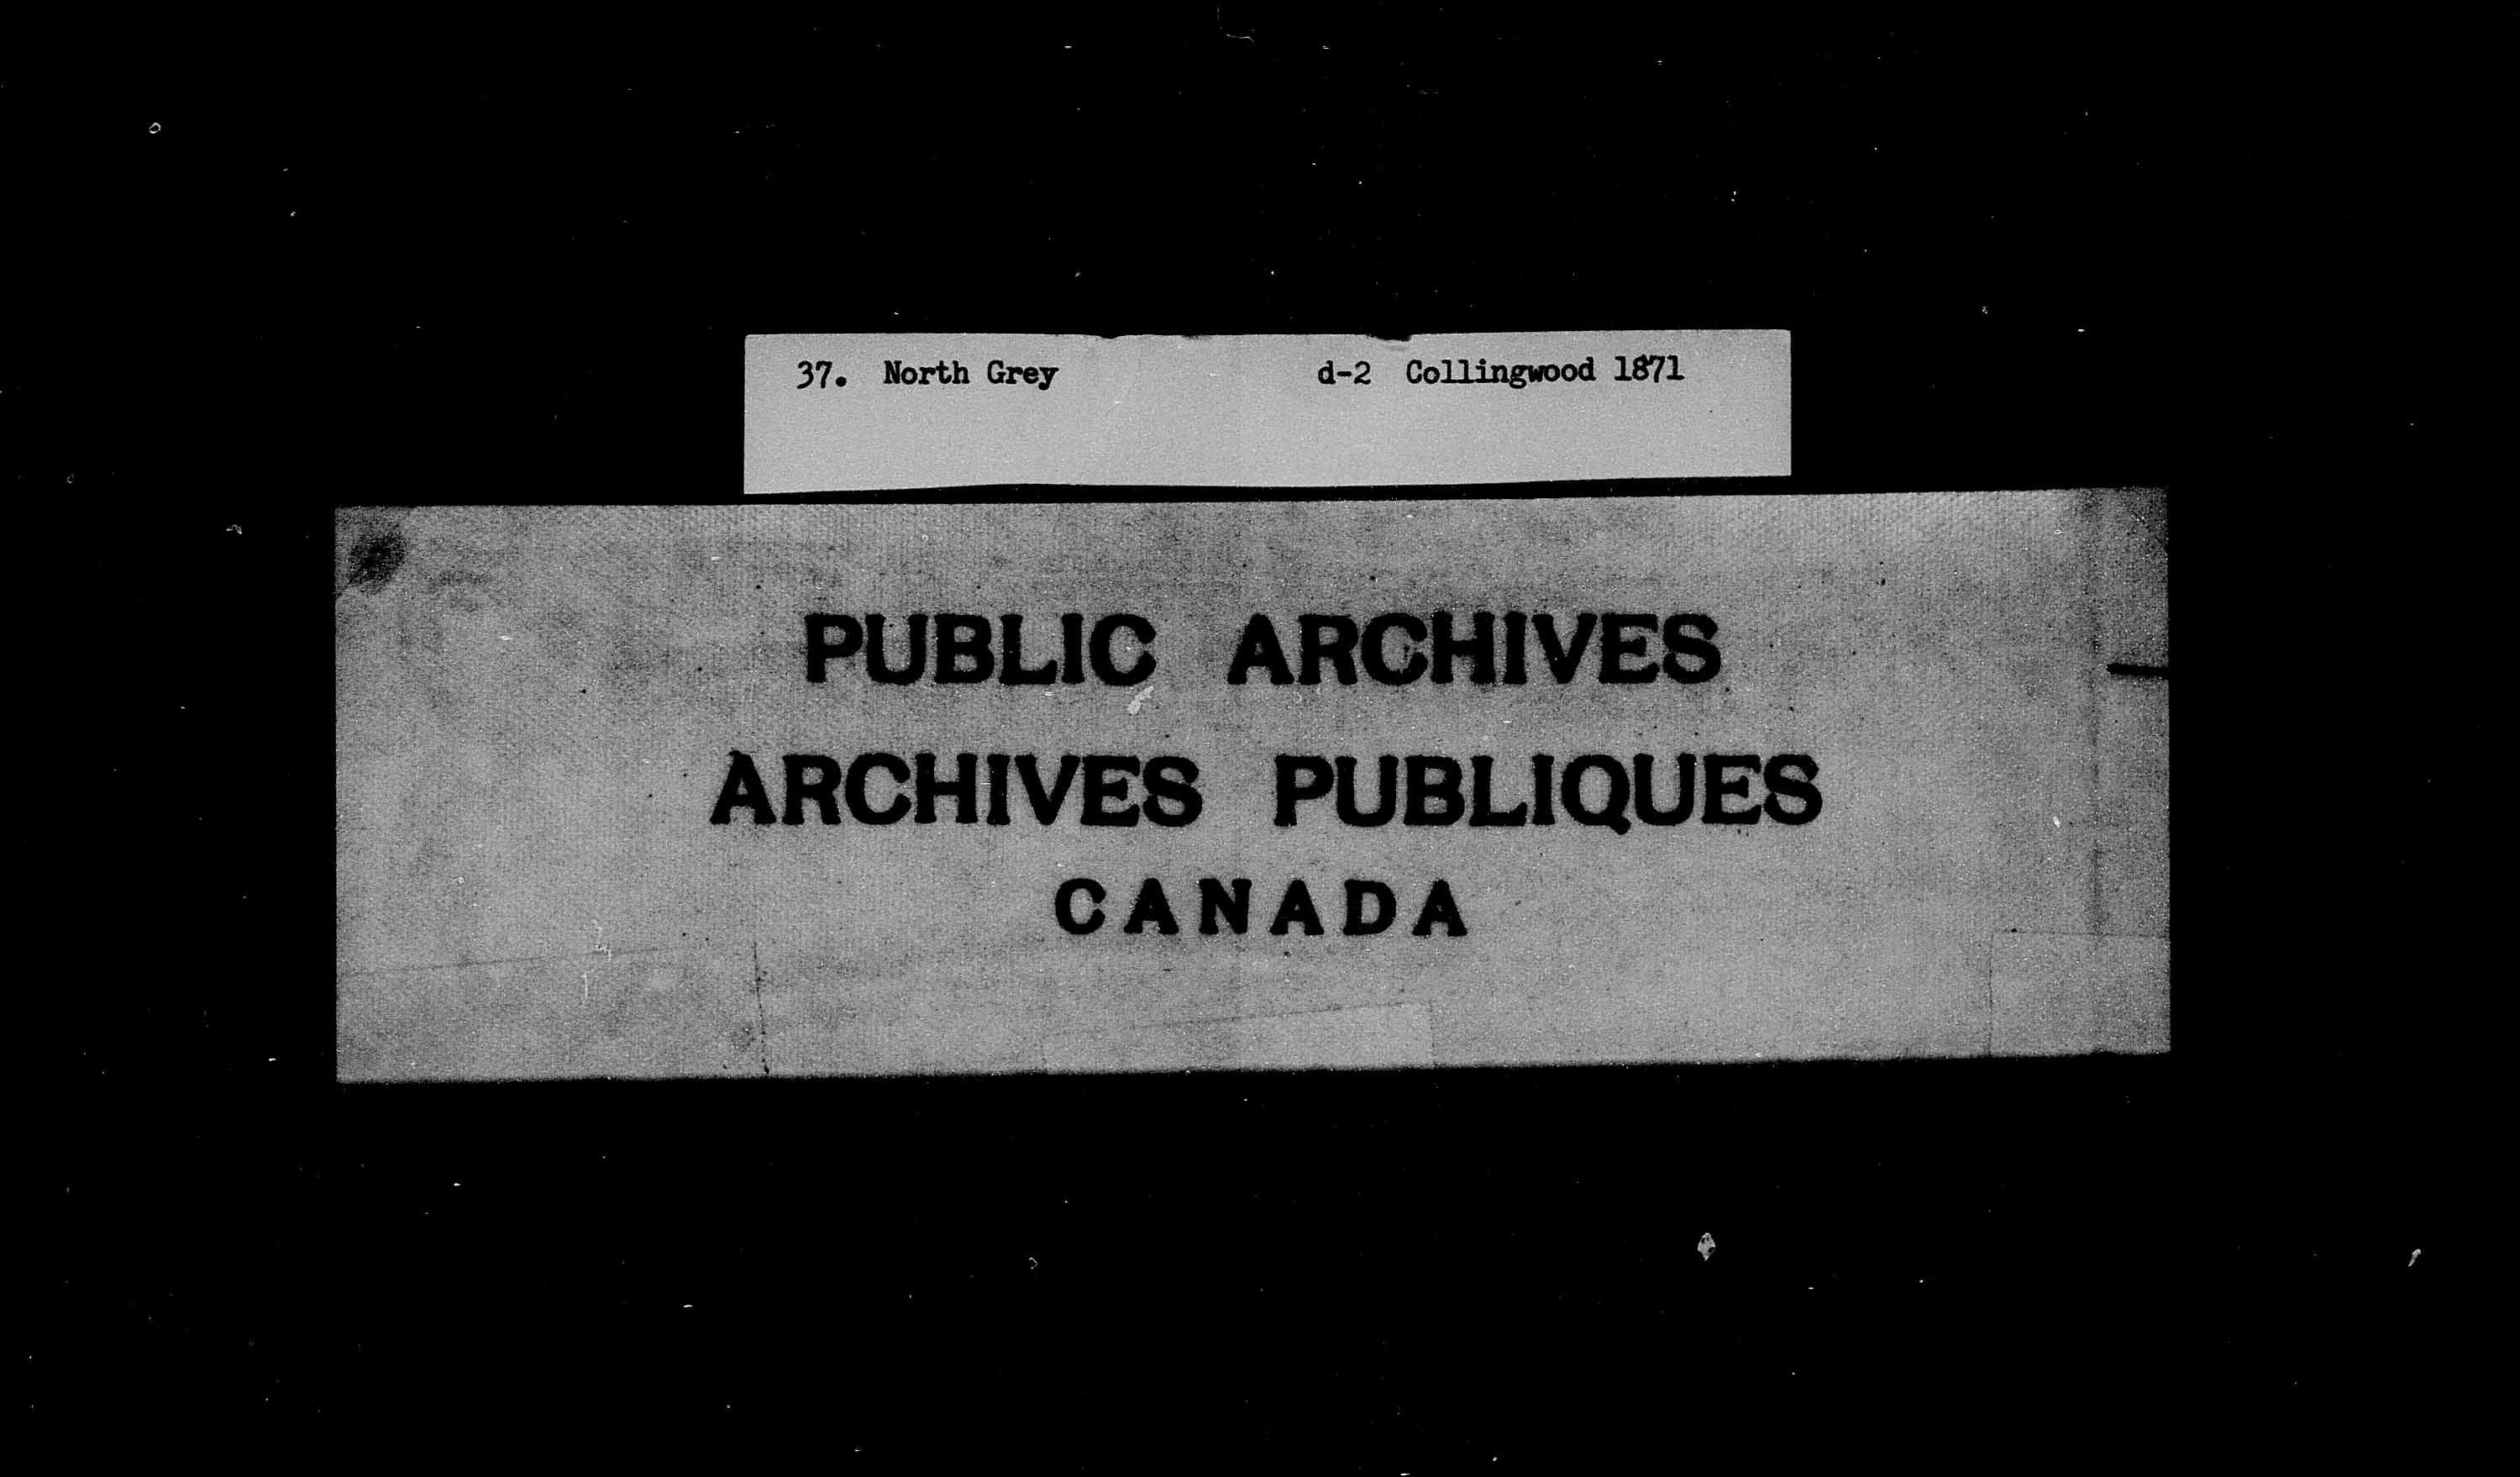 Title: Census of Canada, 1871 - Mikan Number: 142105 - Microform: c-9953